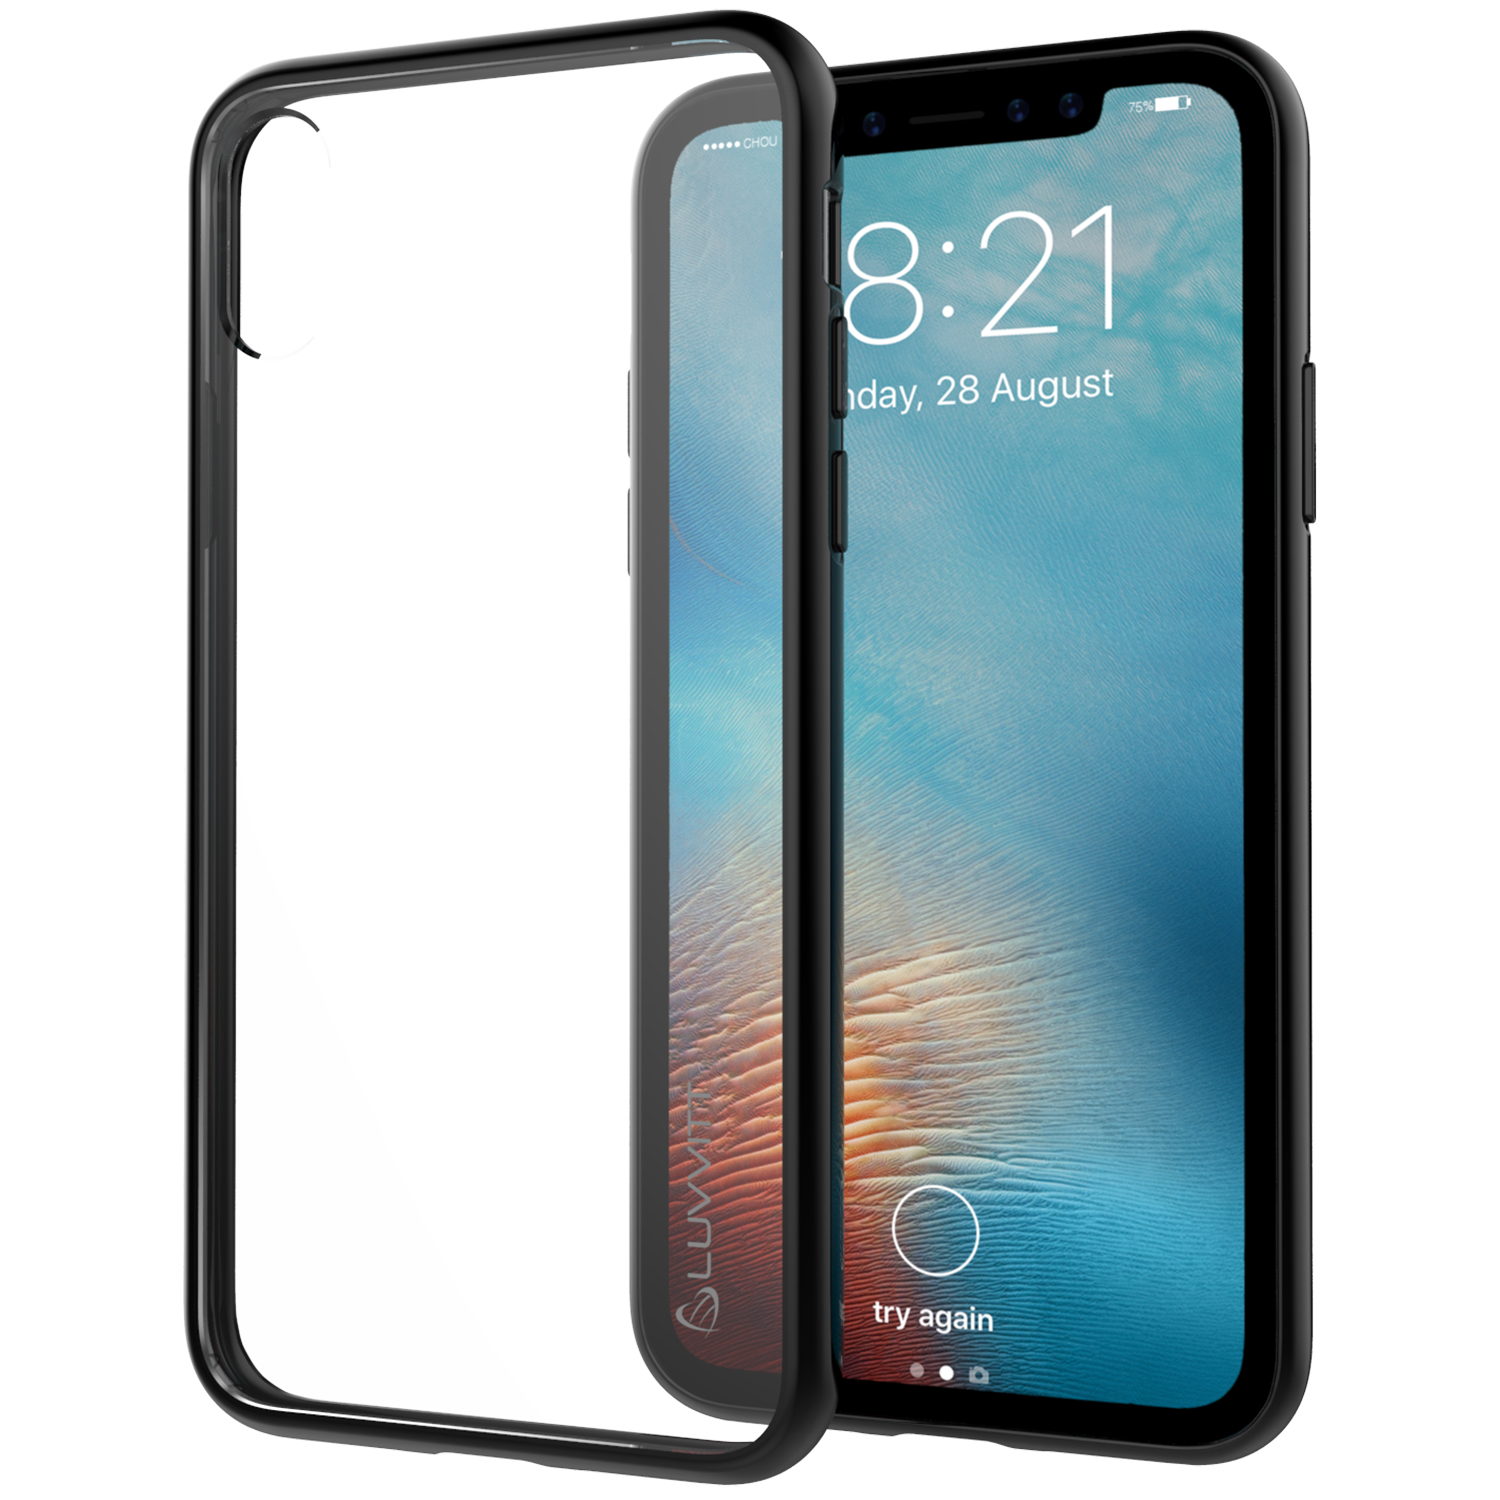 new product 5e260 a014d Details about Luvvitt Clear View Hybrid Case for iPhone X / XS - Black